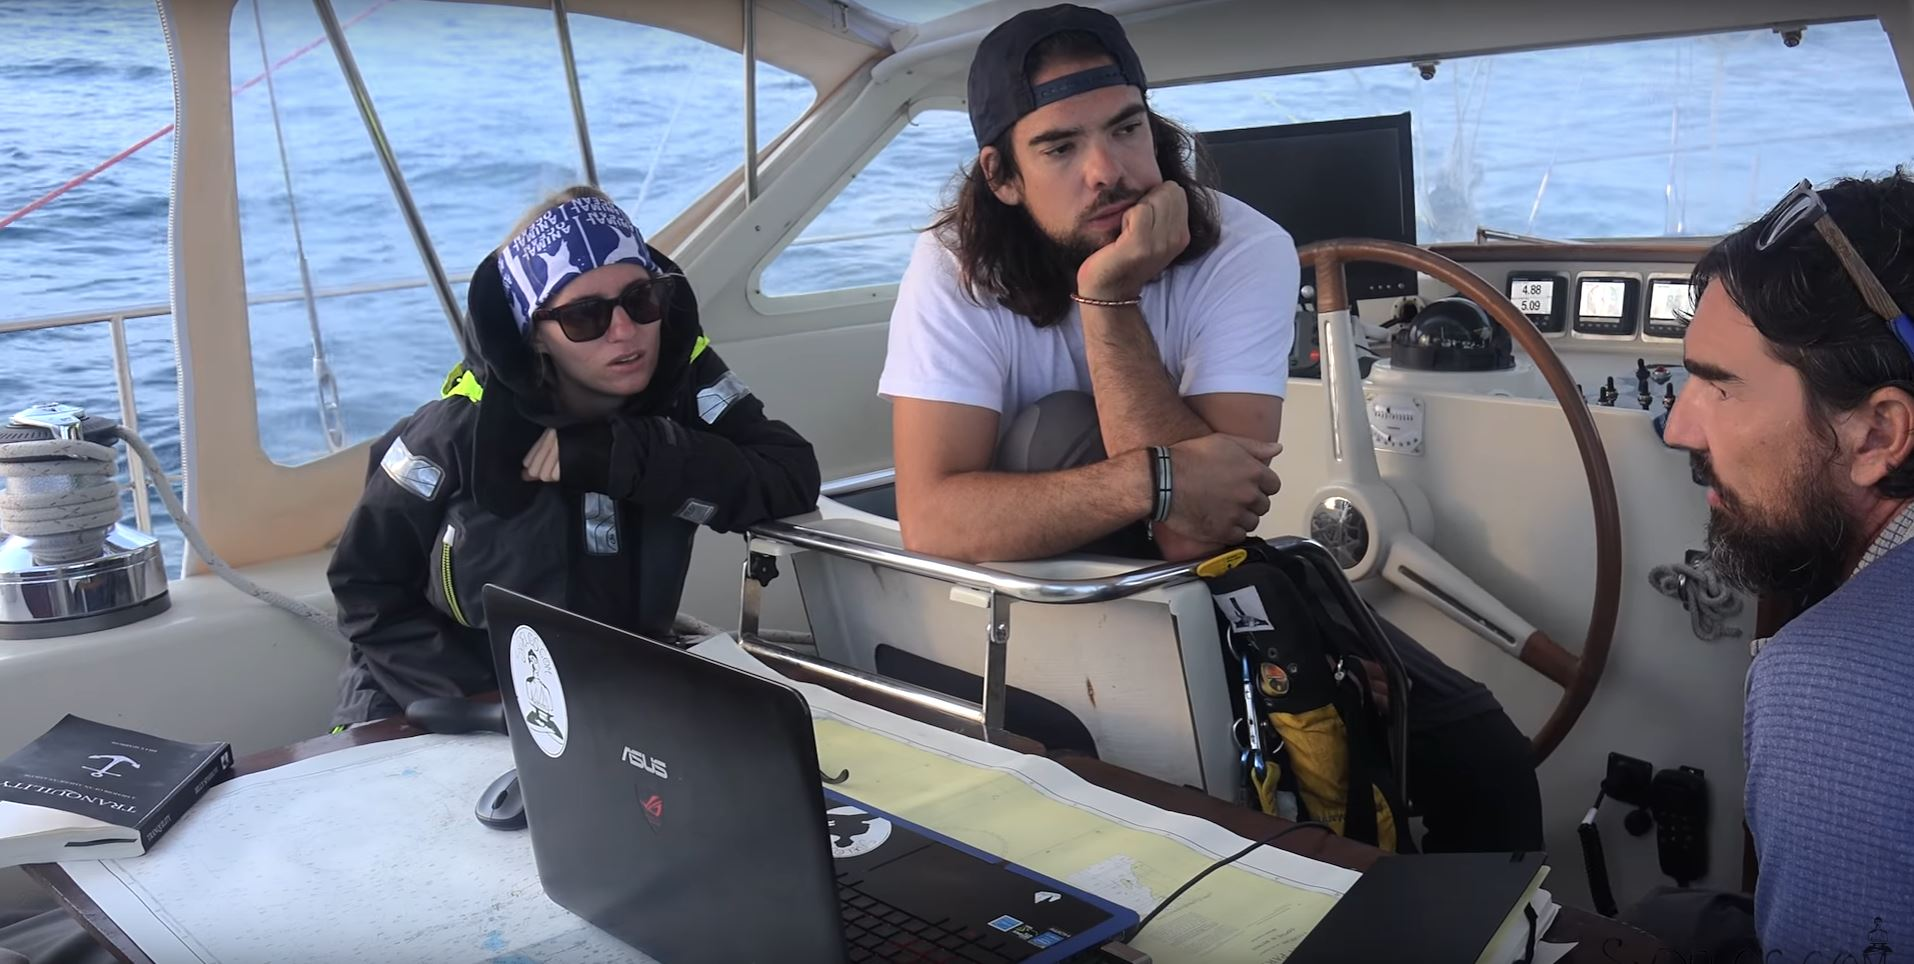 planning route across ocean on sailboat